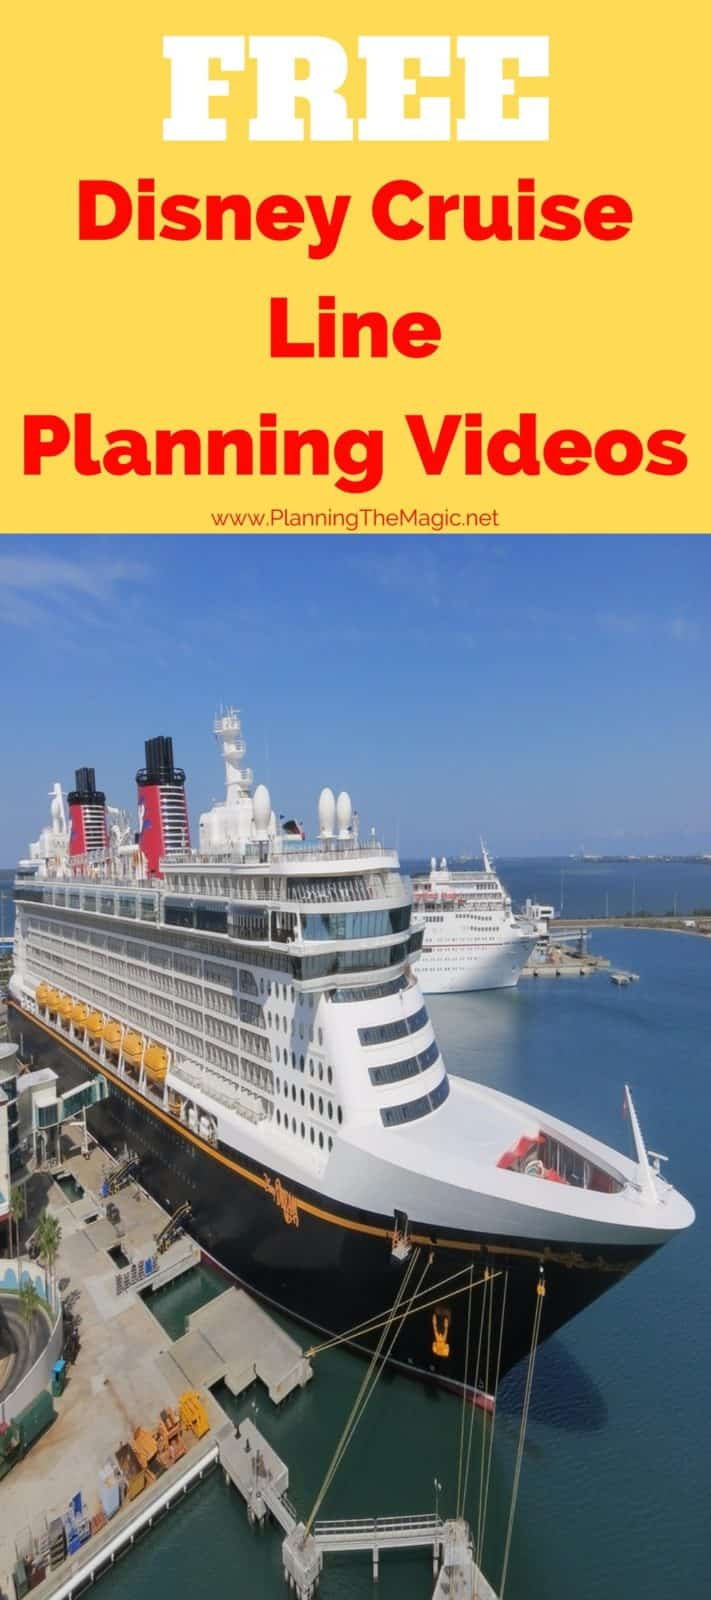 disney cruise 2018 schedule - 711×1600